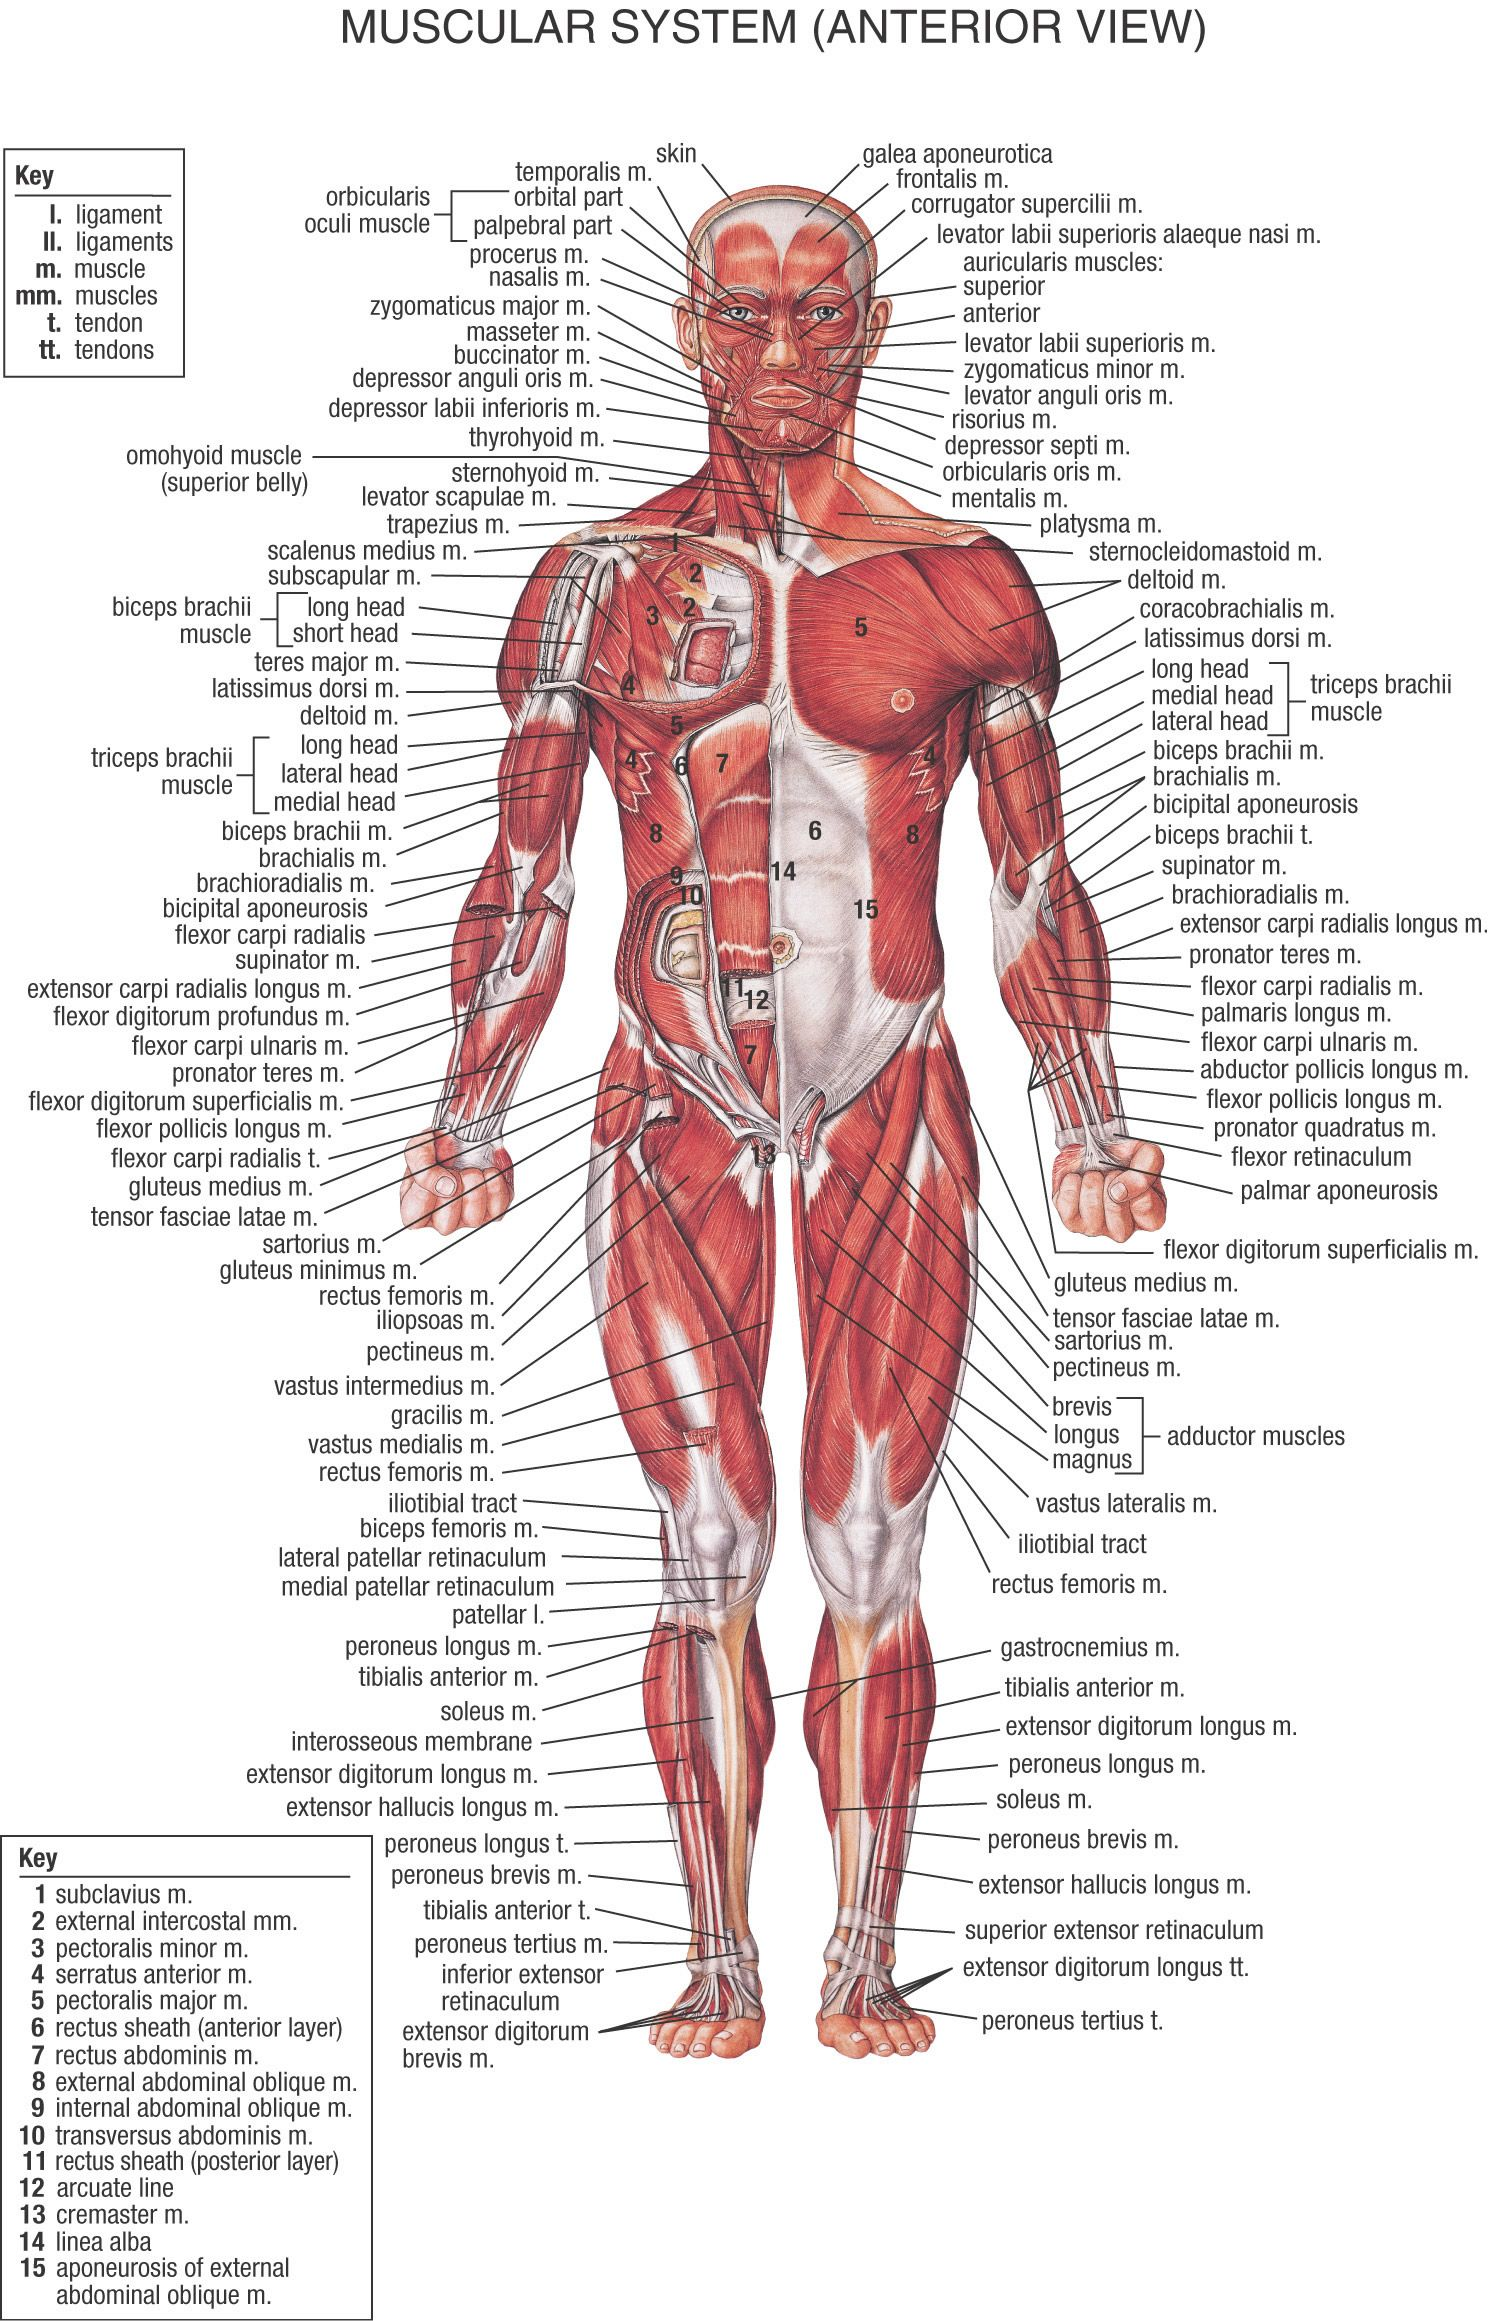 Muscle Diagram Back View House Wiring Diagram Symbols